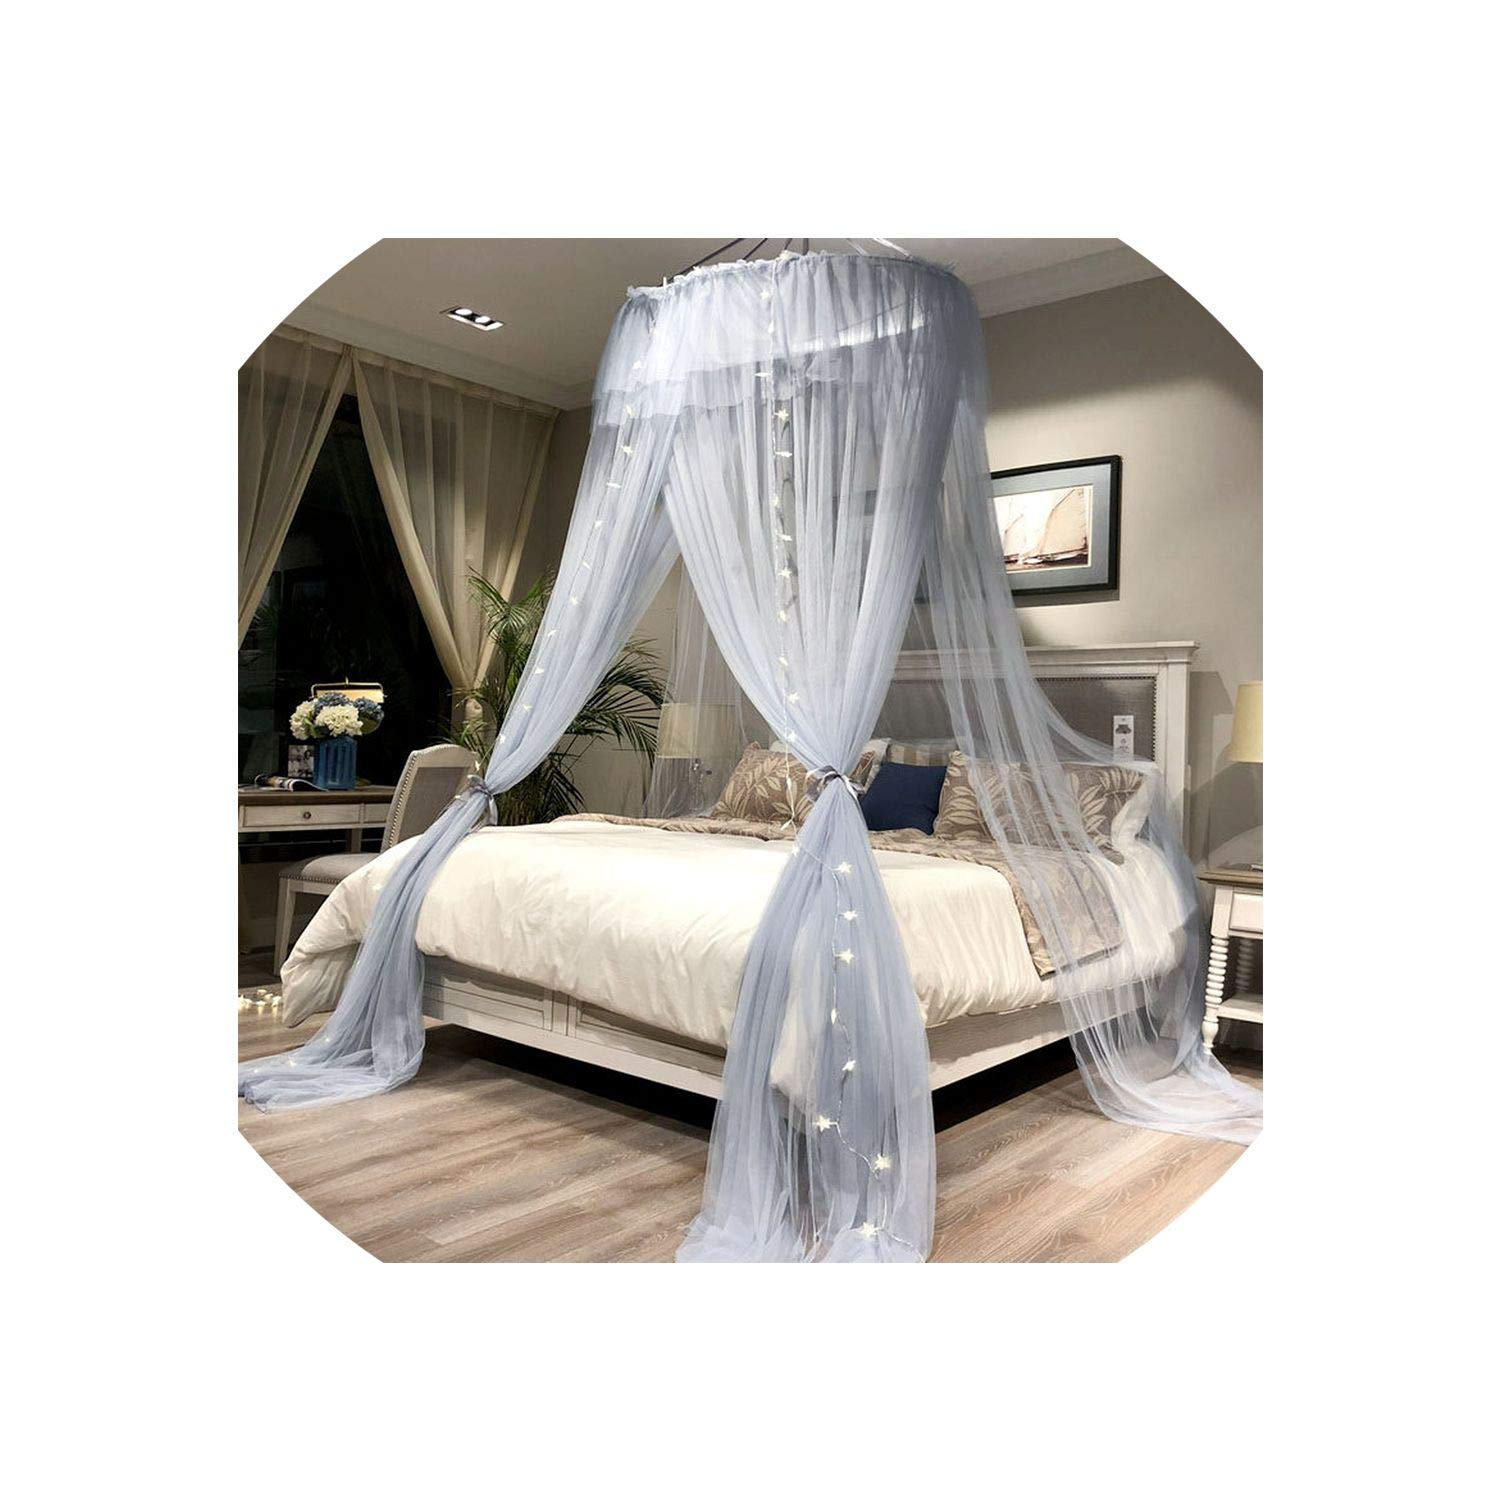 Round Hung Dome Mosquito Net Fine Mesh Mosquito Nets for Double Bed Mosquito Netting for Baby Bed Net Tent Bedroom Decor,Gray with Lamp,1.8M (6 Feet) Bed